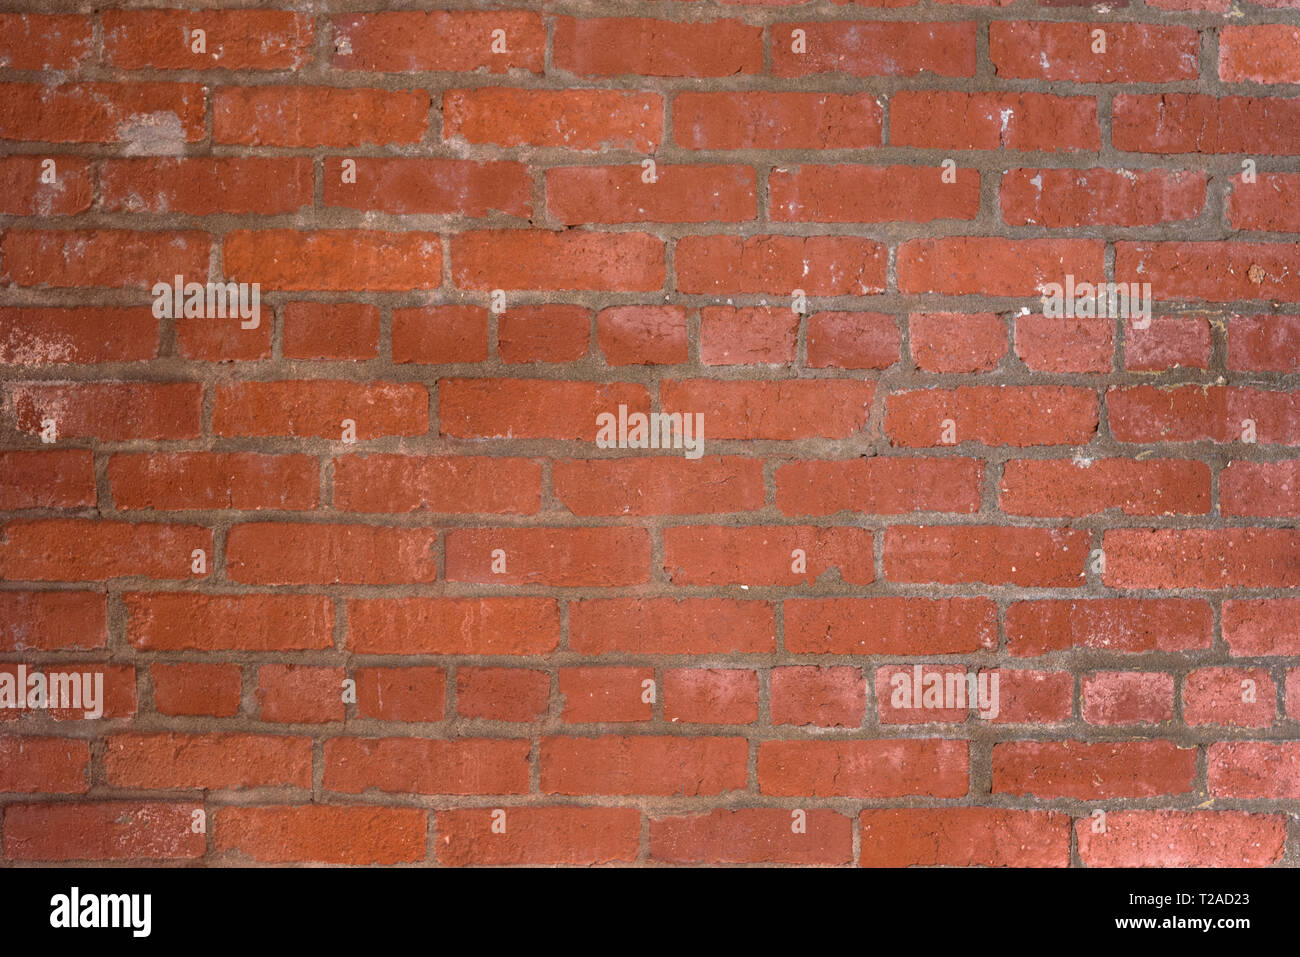 Reddish orange brick wall background showing some details in bricks. - Stock Image